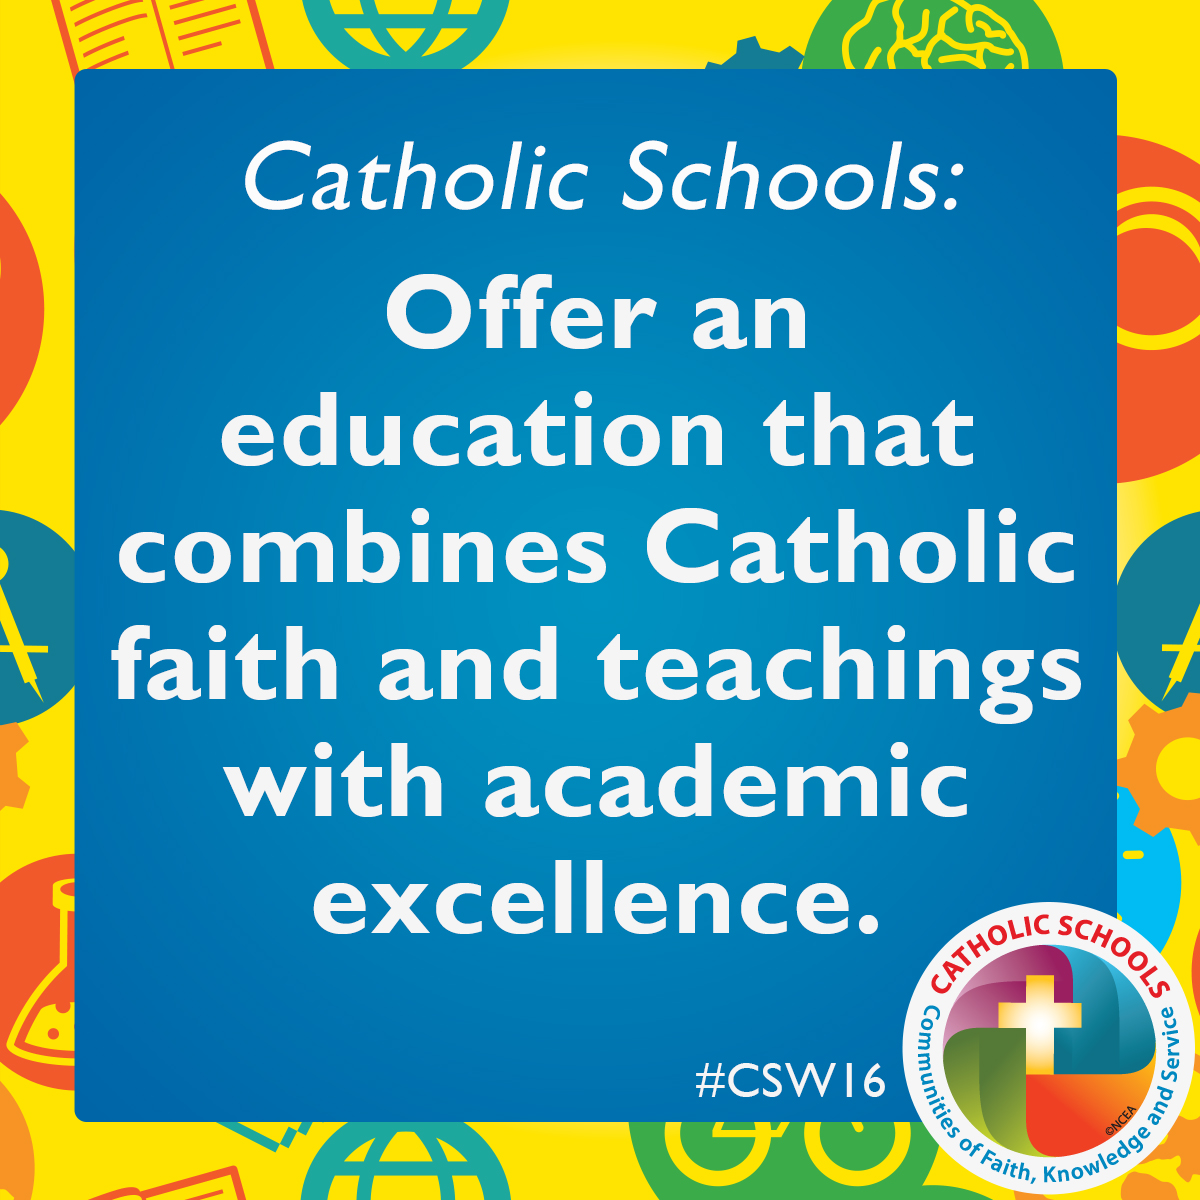 Catholic Schools Week John Paul Ii Center